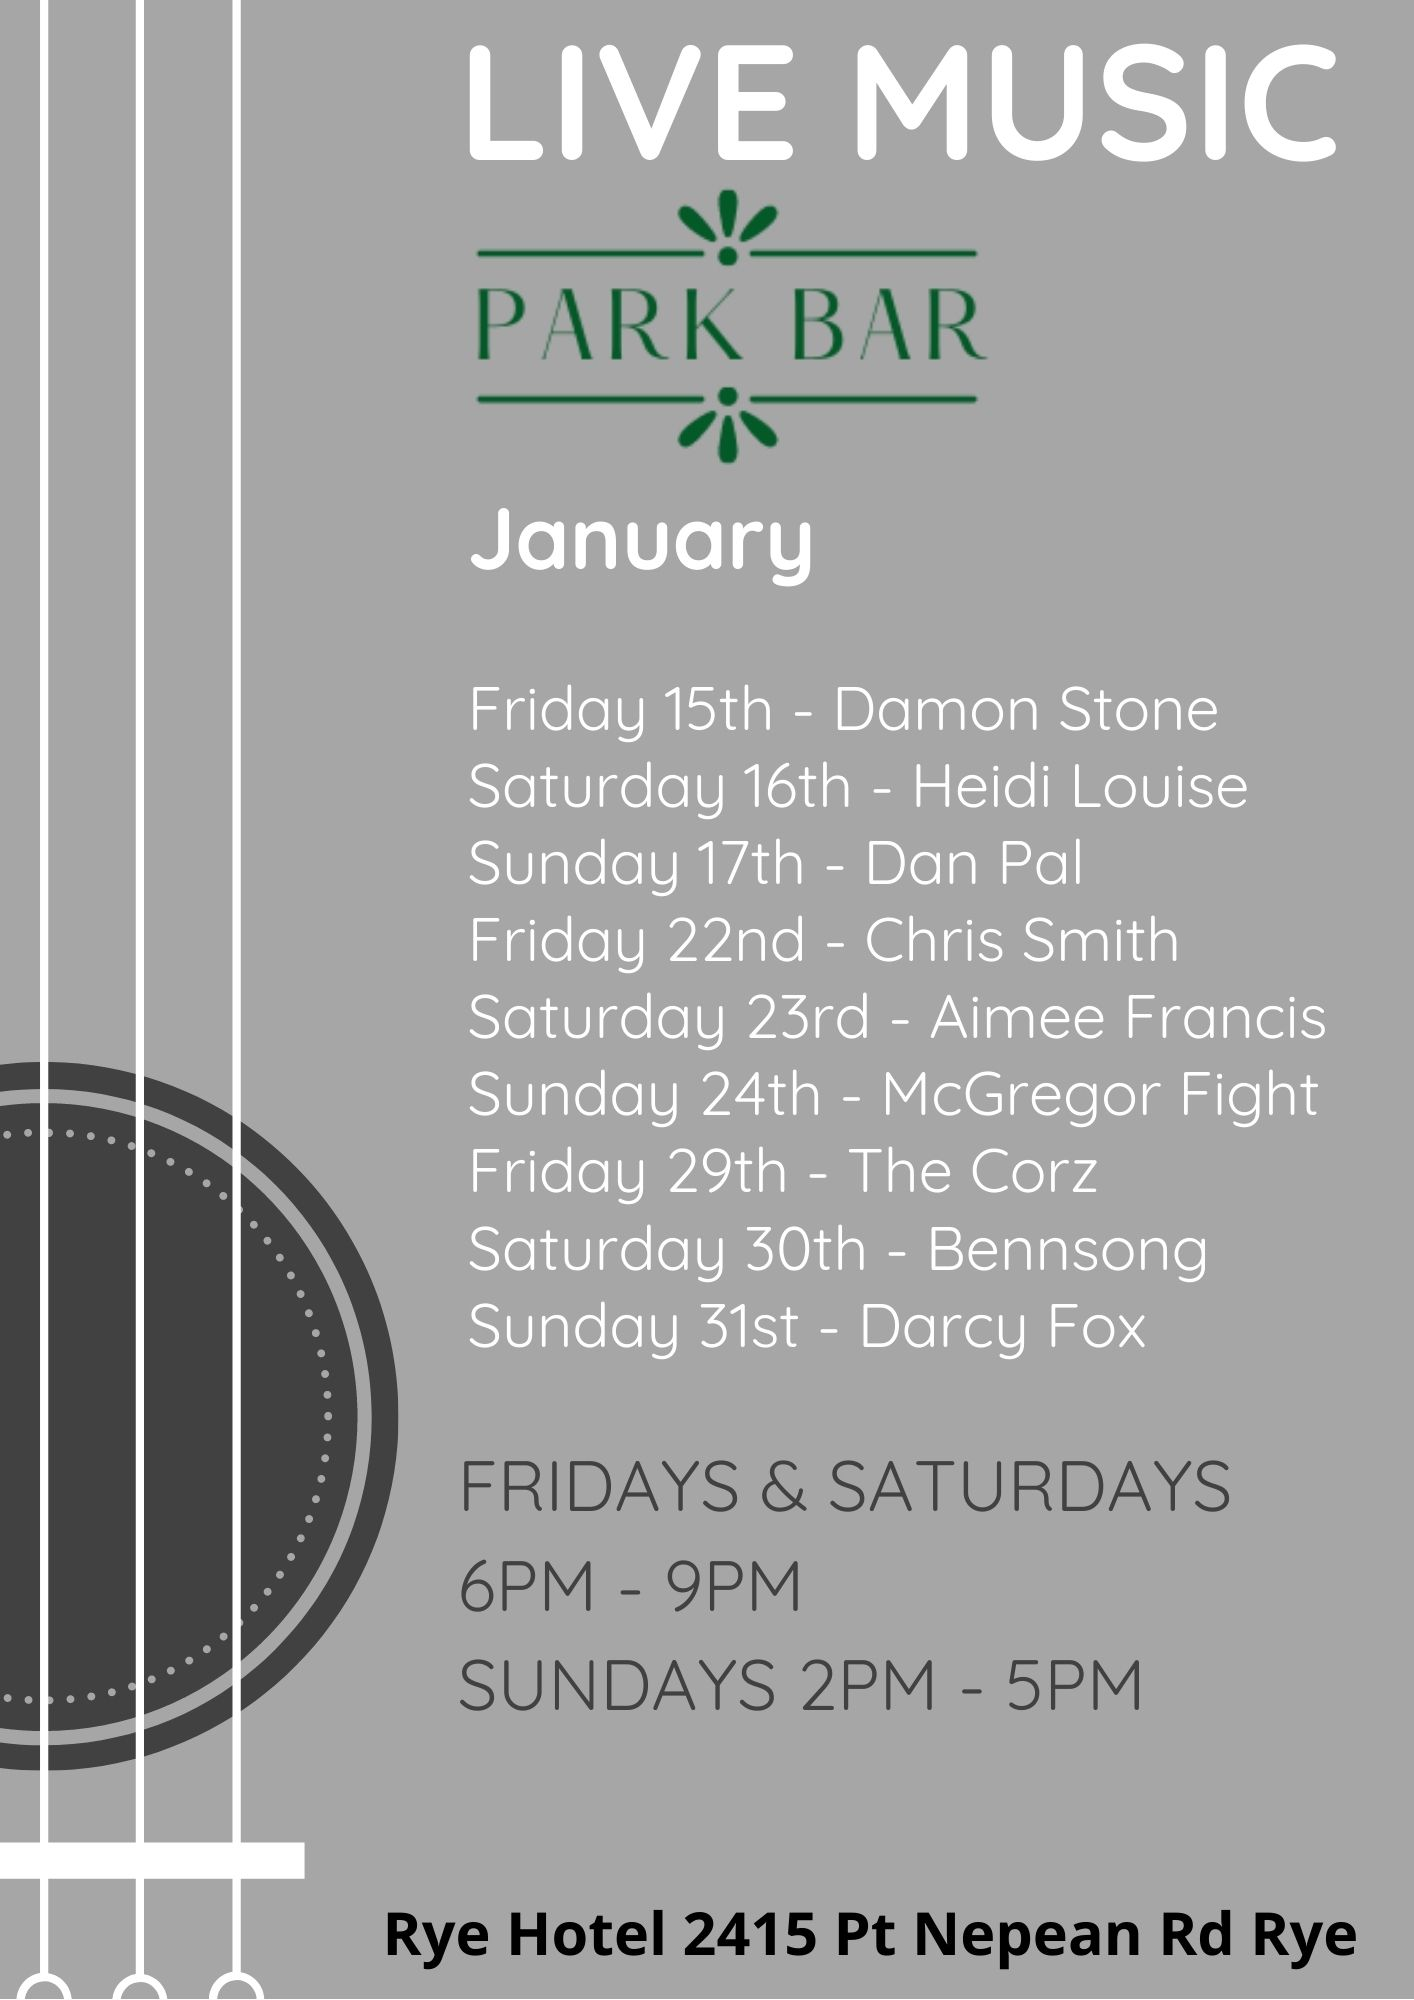 Live Music Poster - 13th January 2021